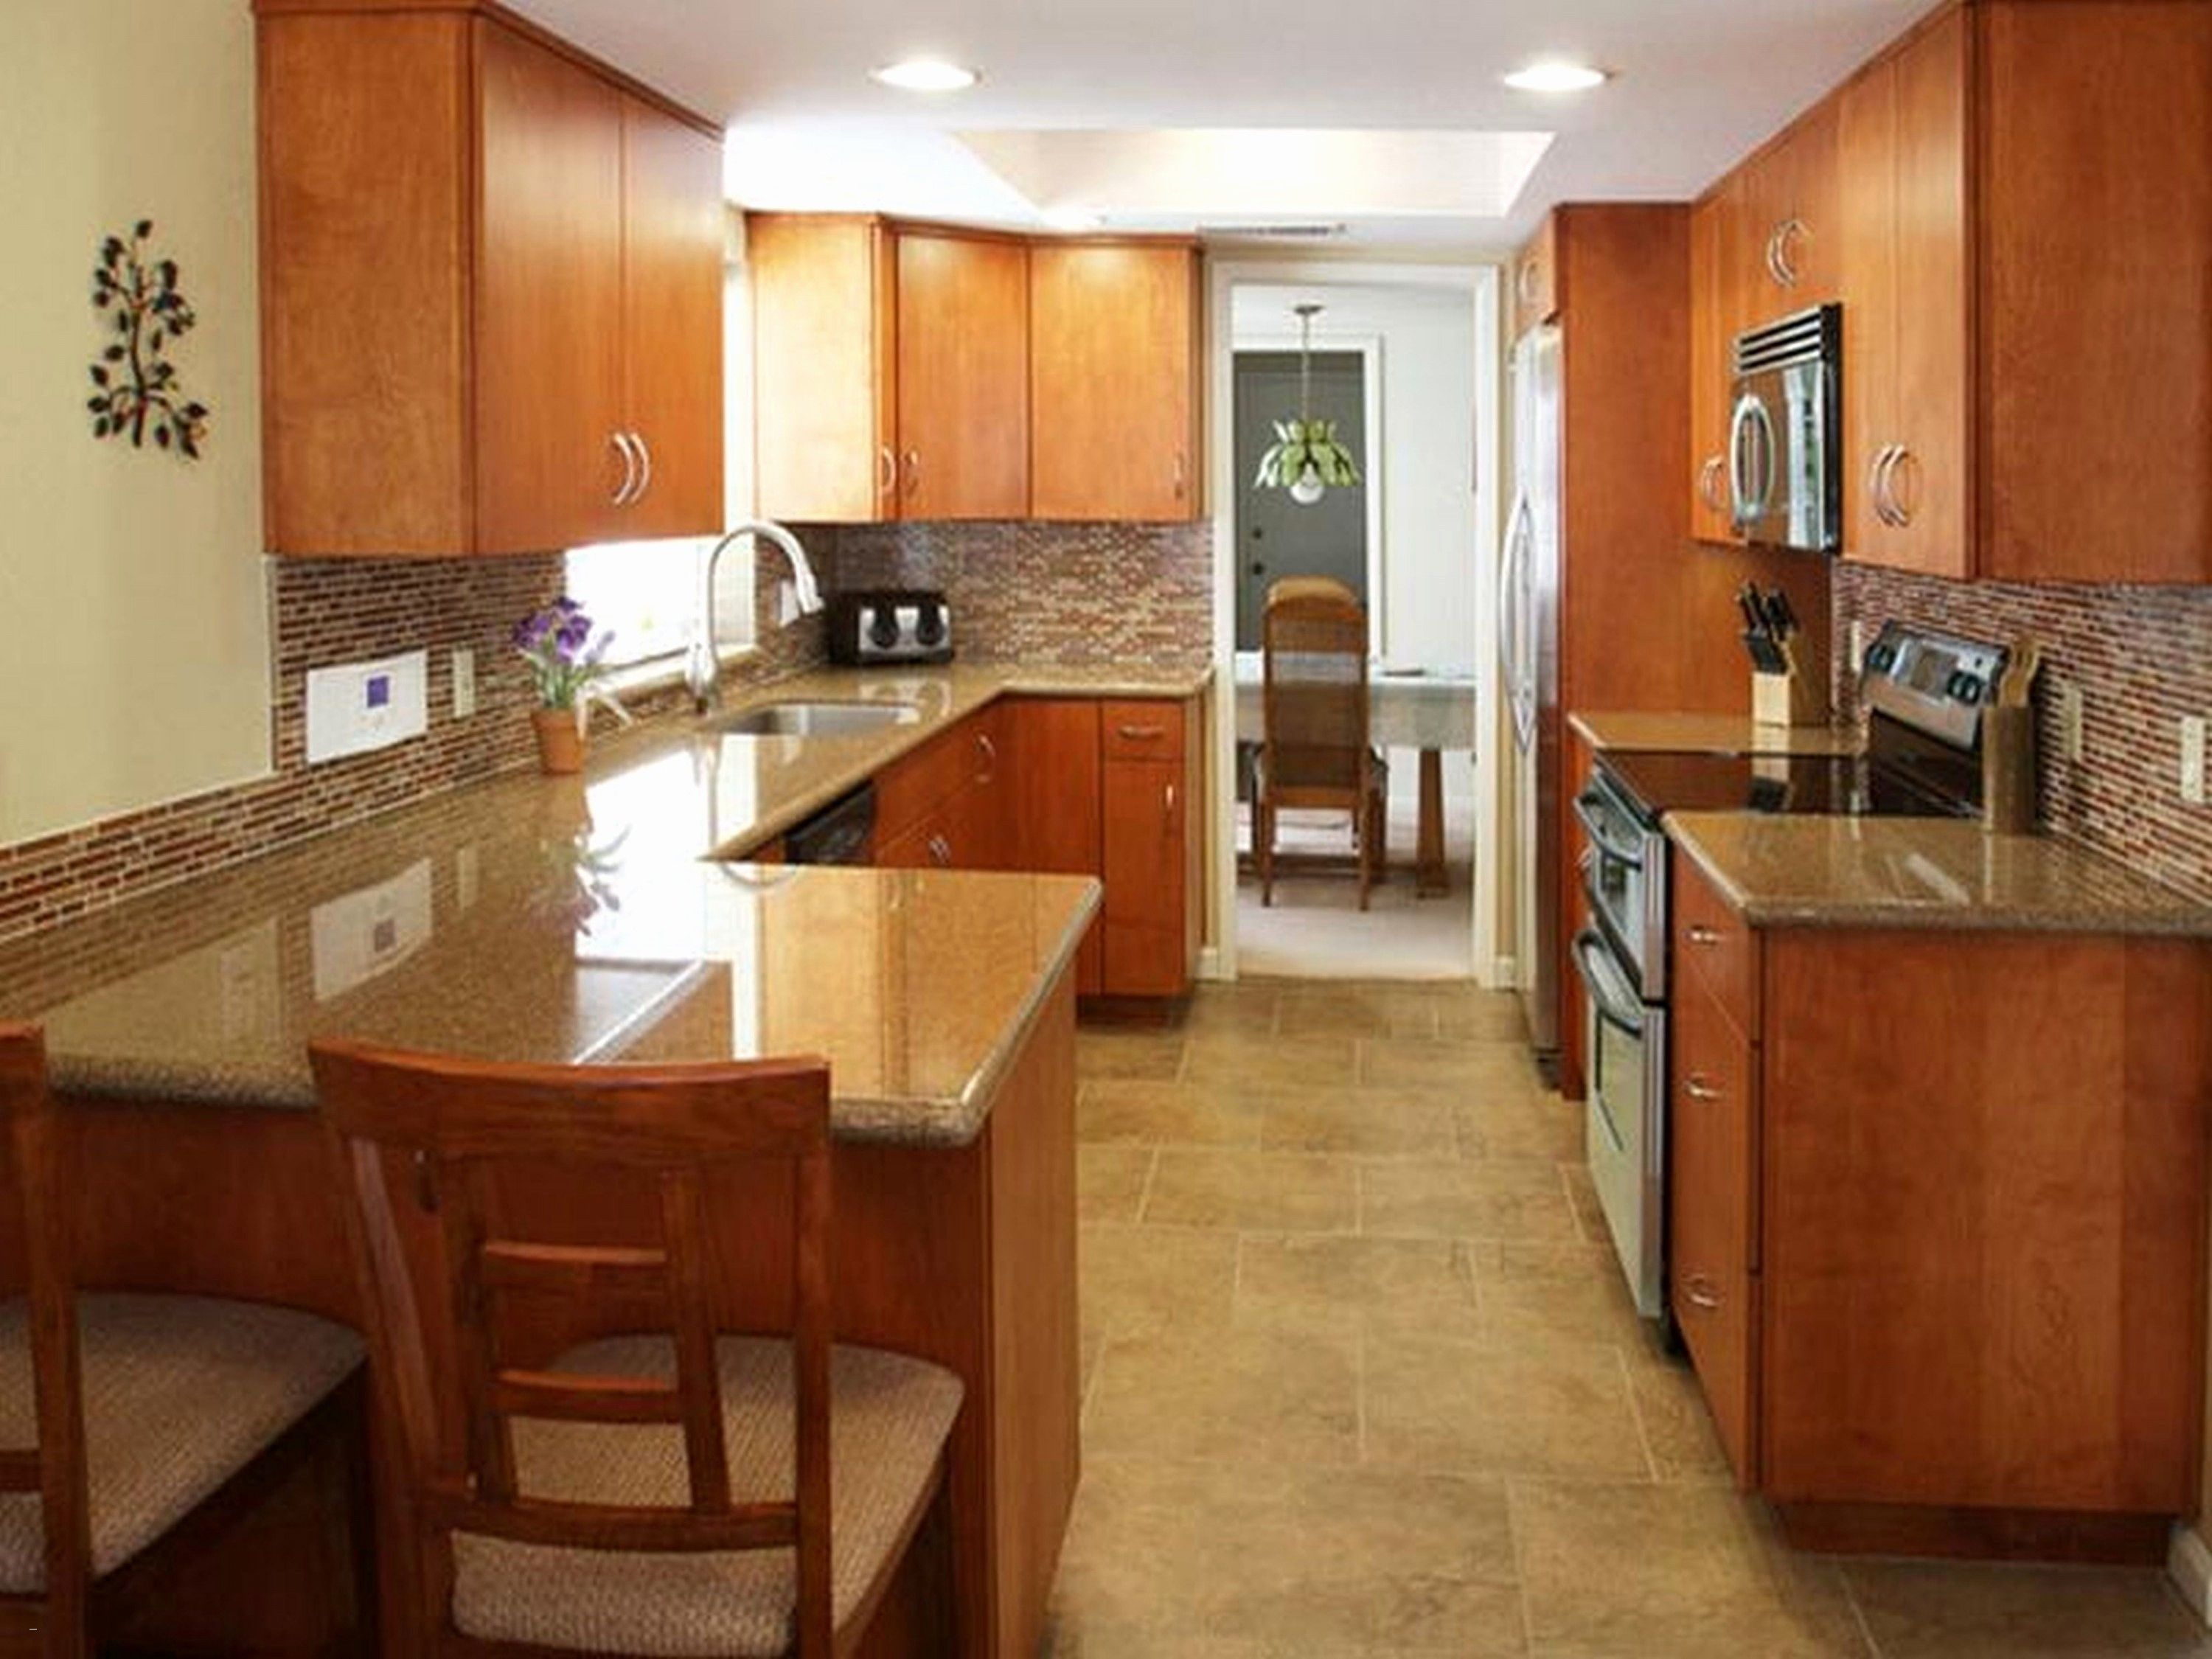 Pin By Curry Babcock On Kitchen Remodel Galley Kitchen Layout Galley Kitchen Design Galley Kitchen Remodel